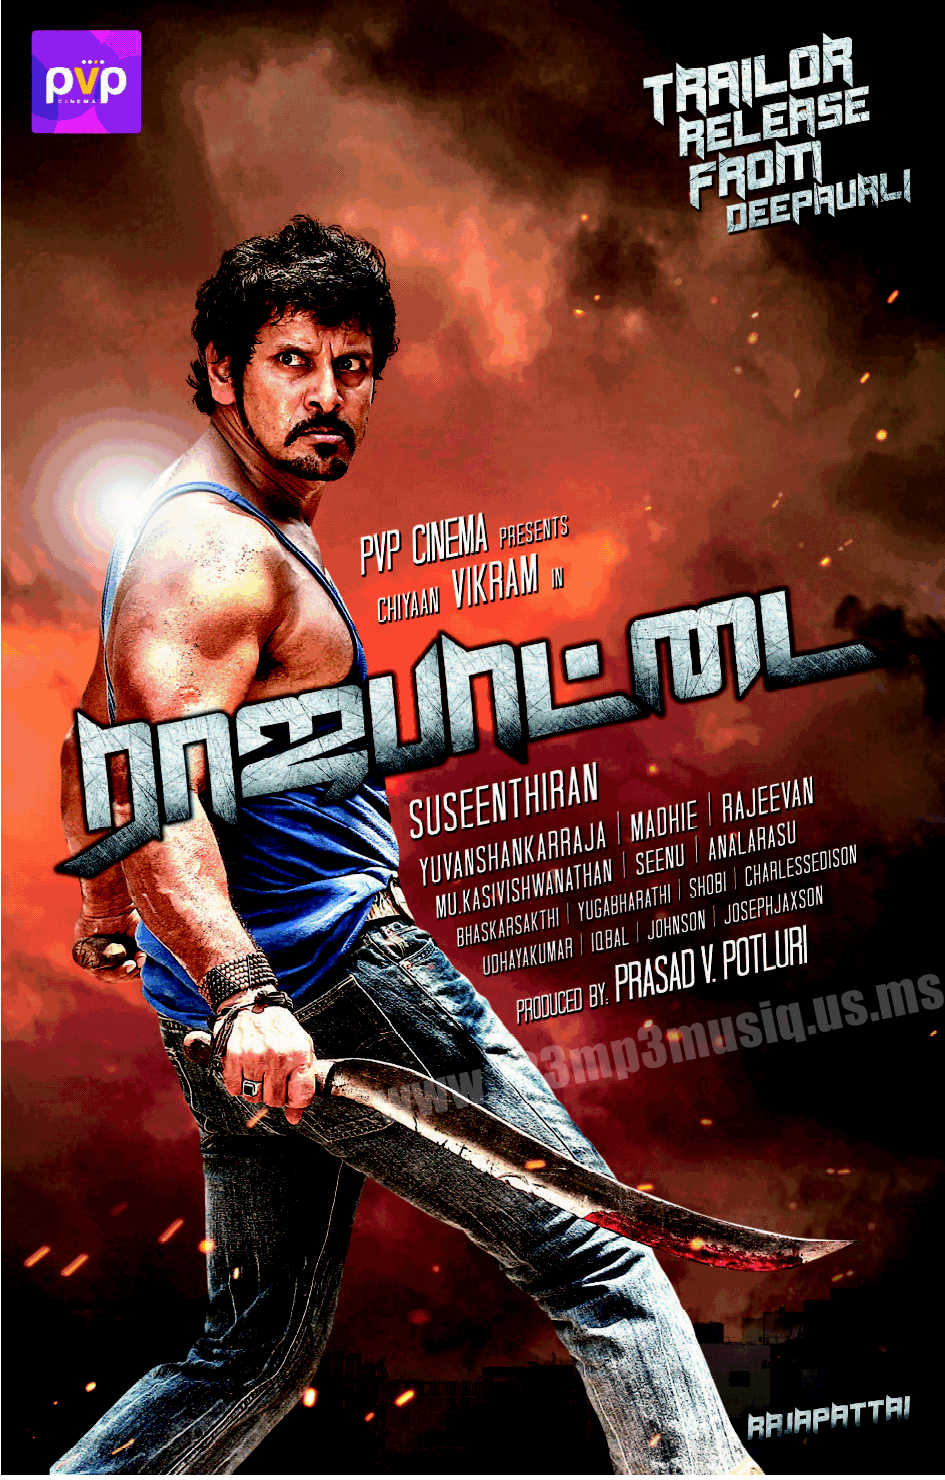 Rajapattai tamil movie mp3 song download - Ethiopian new